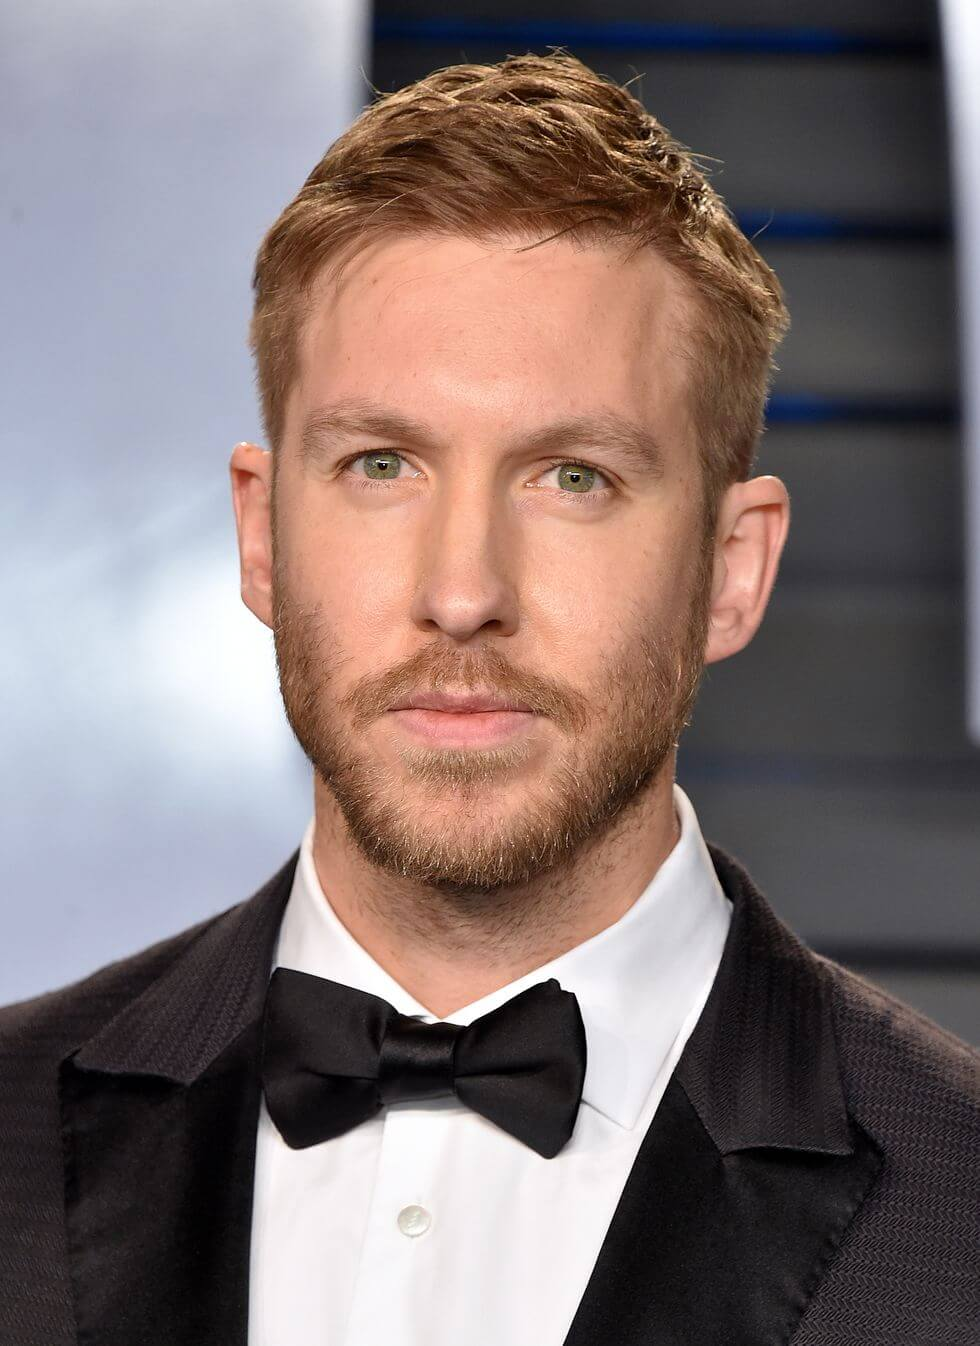 celebrities don't drink alcohol_Calvin Harris